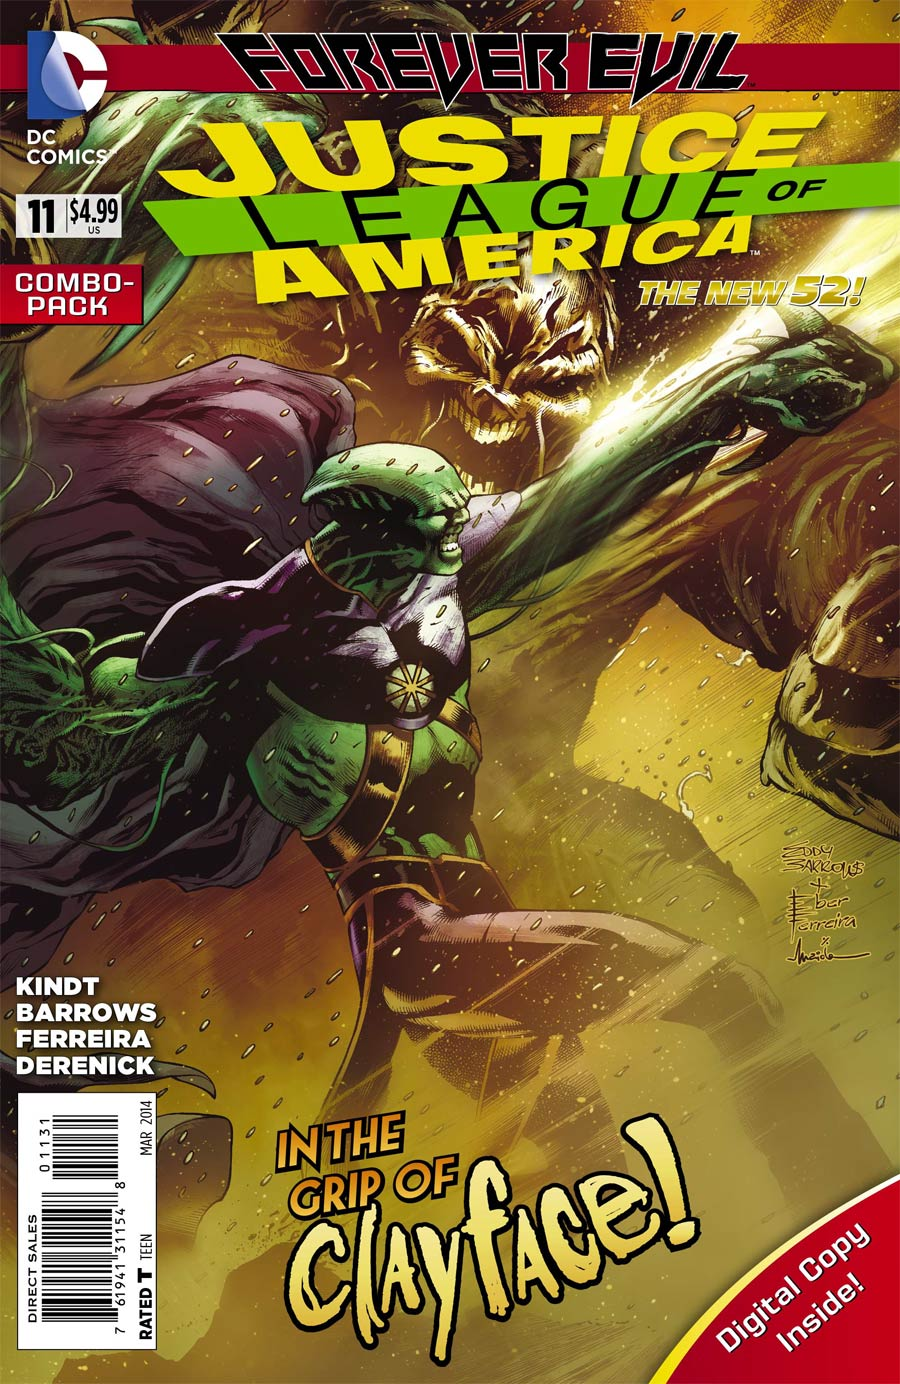 Justice League Of America Vol 3 #11 Cover C Combo Pack With Polybag (Forever Evil Tie-In)